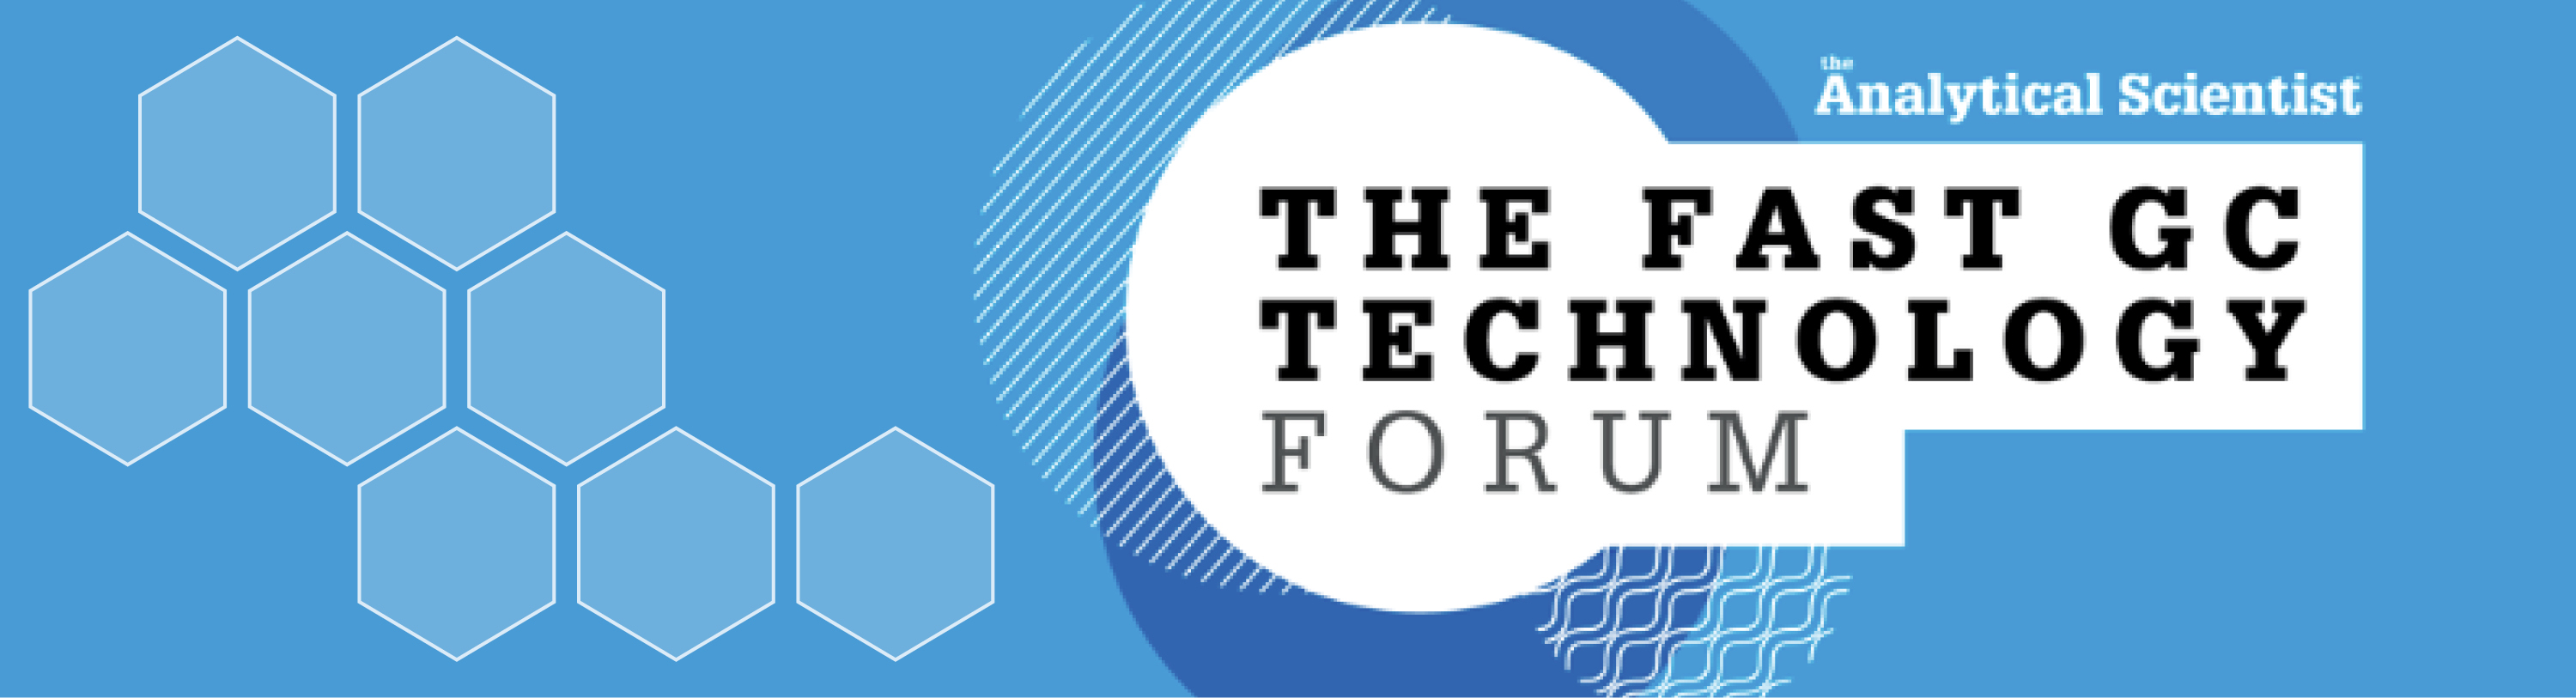 THE FAST GC TECHNOLOGY FORUM